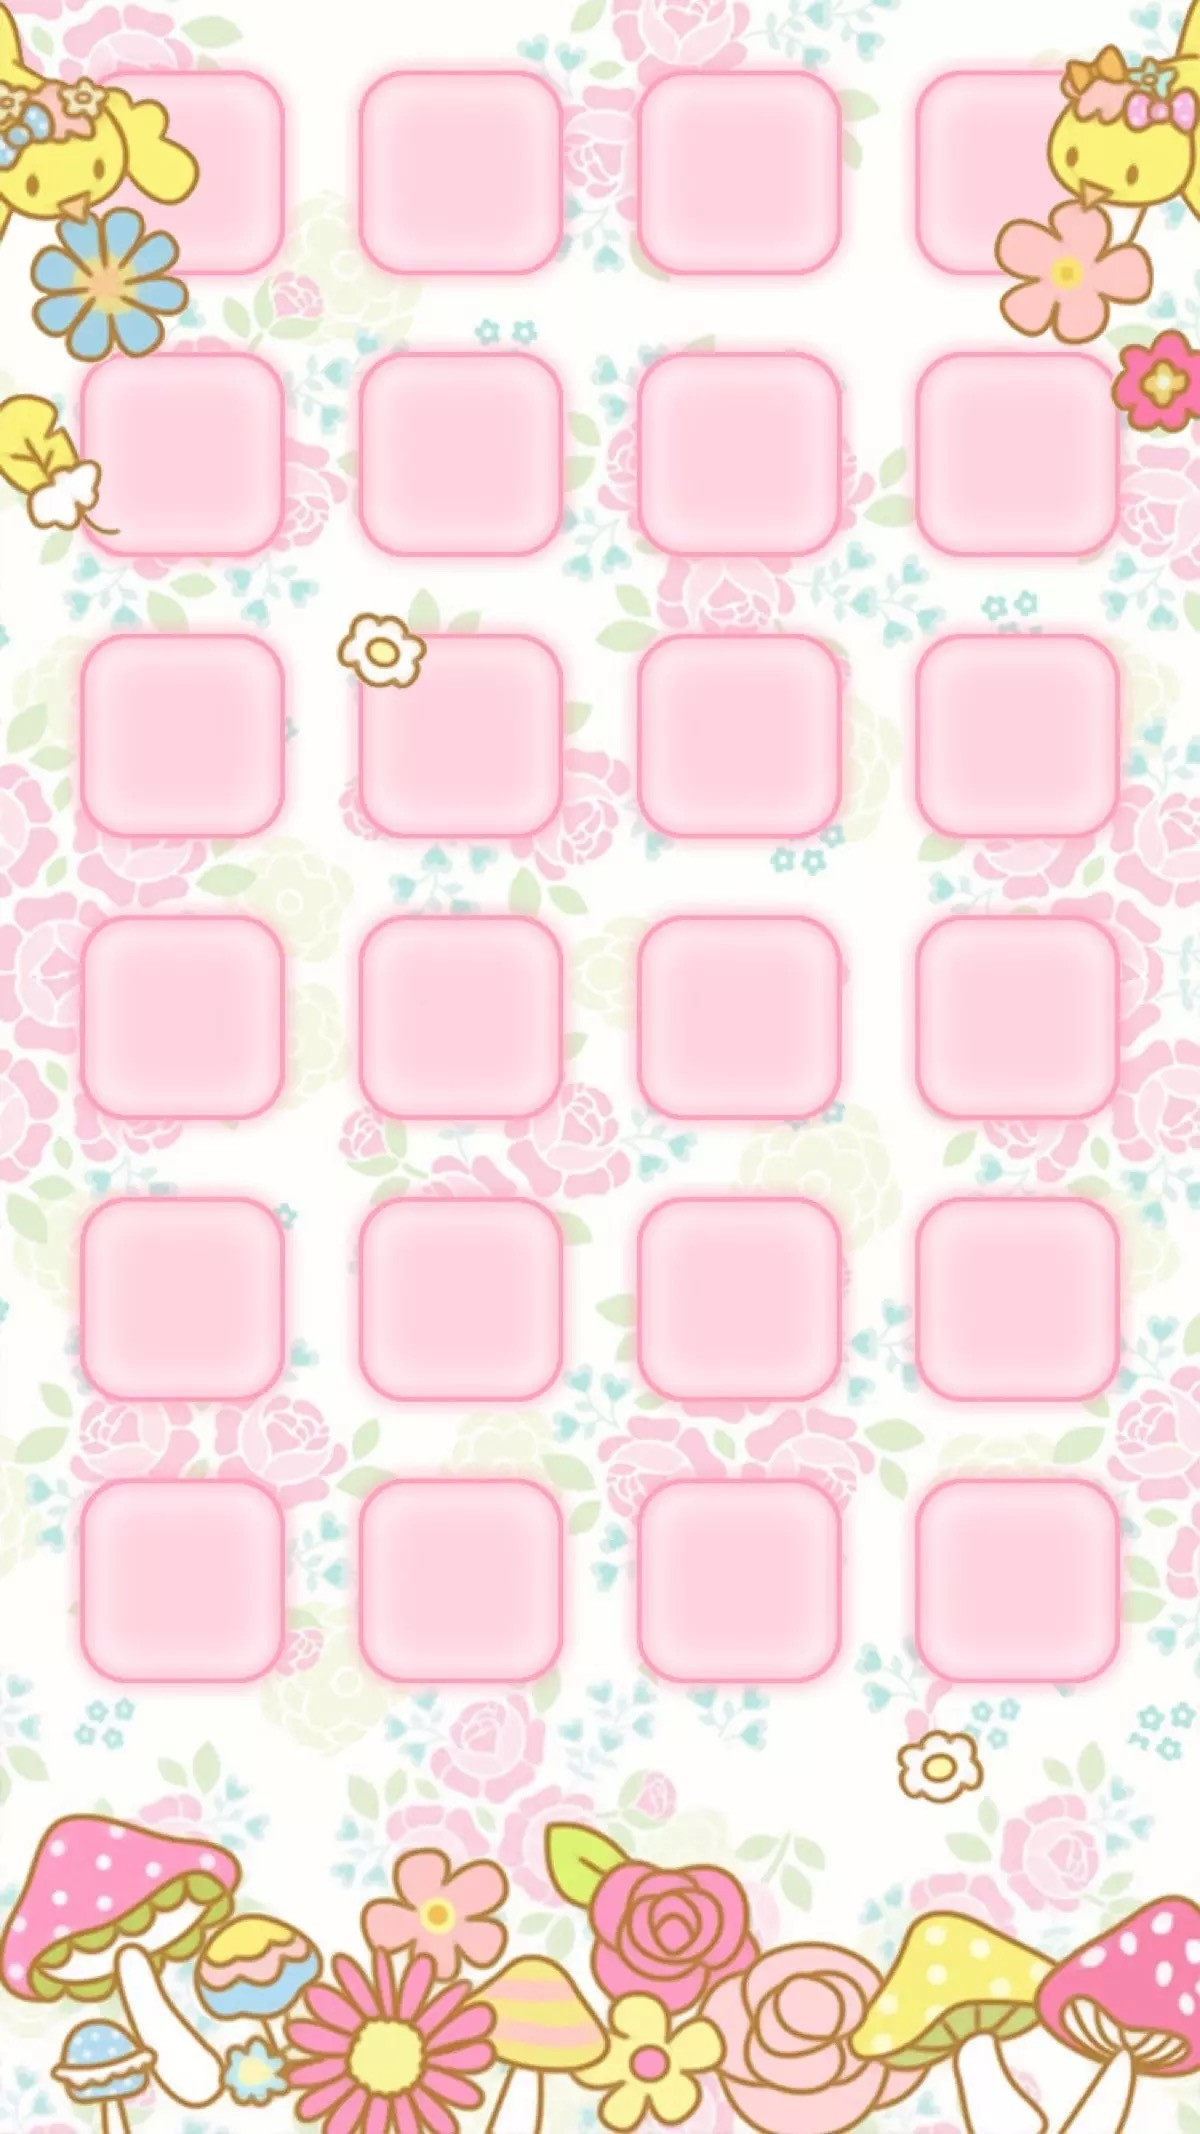 Popular Wallpaper Hello Kitty Iphone 6s Plus - 556451  Best Photo Reference_395745.jpg